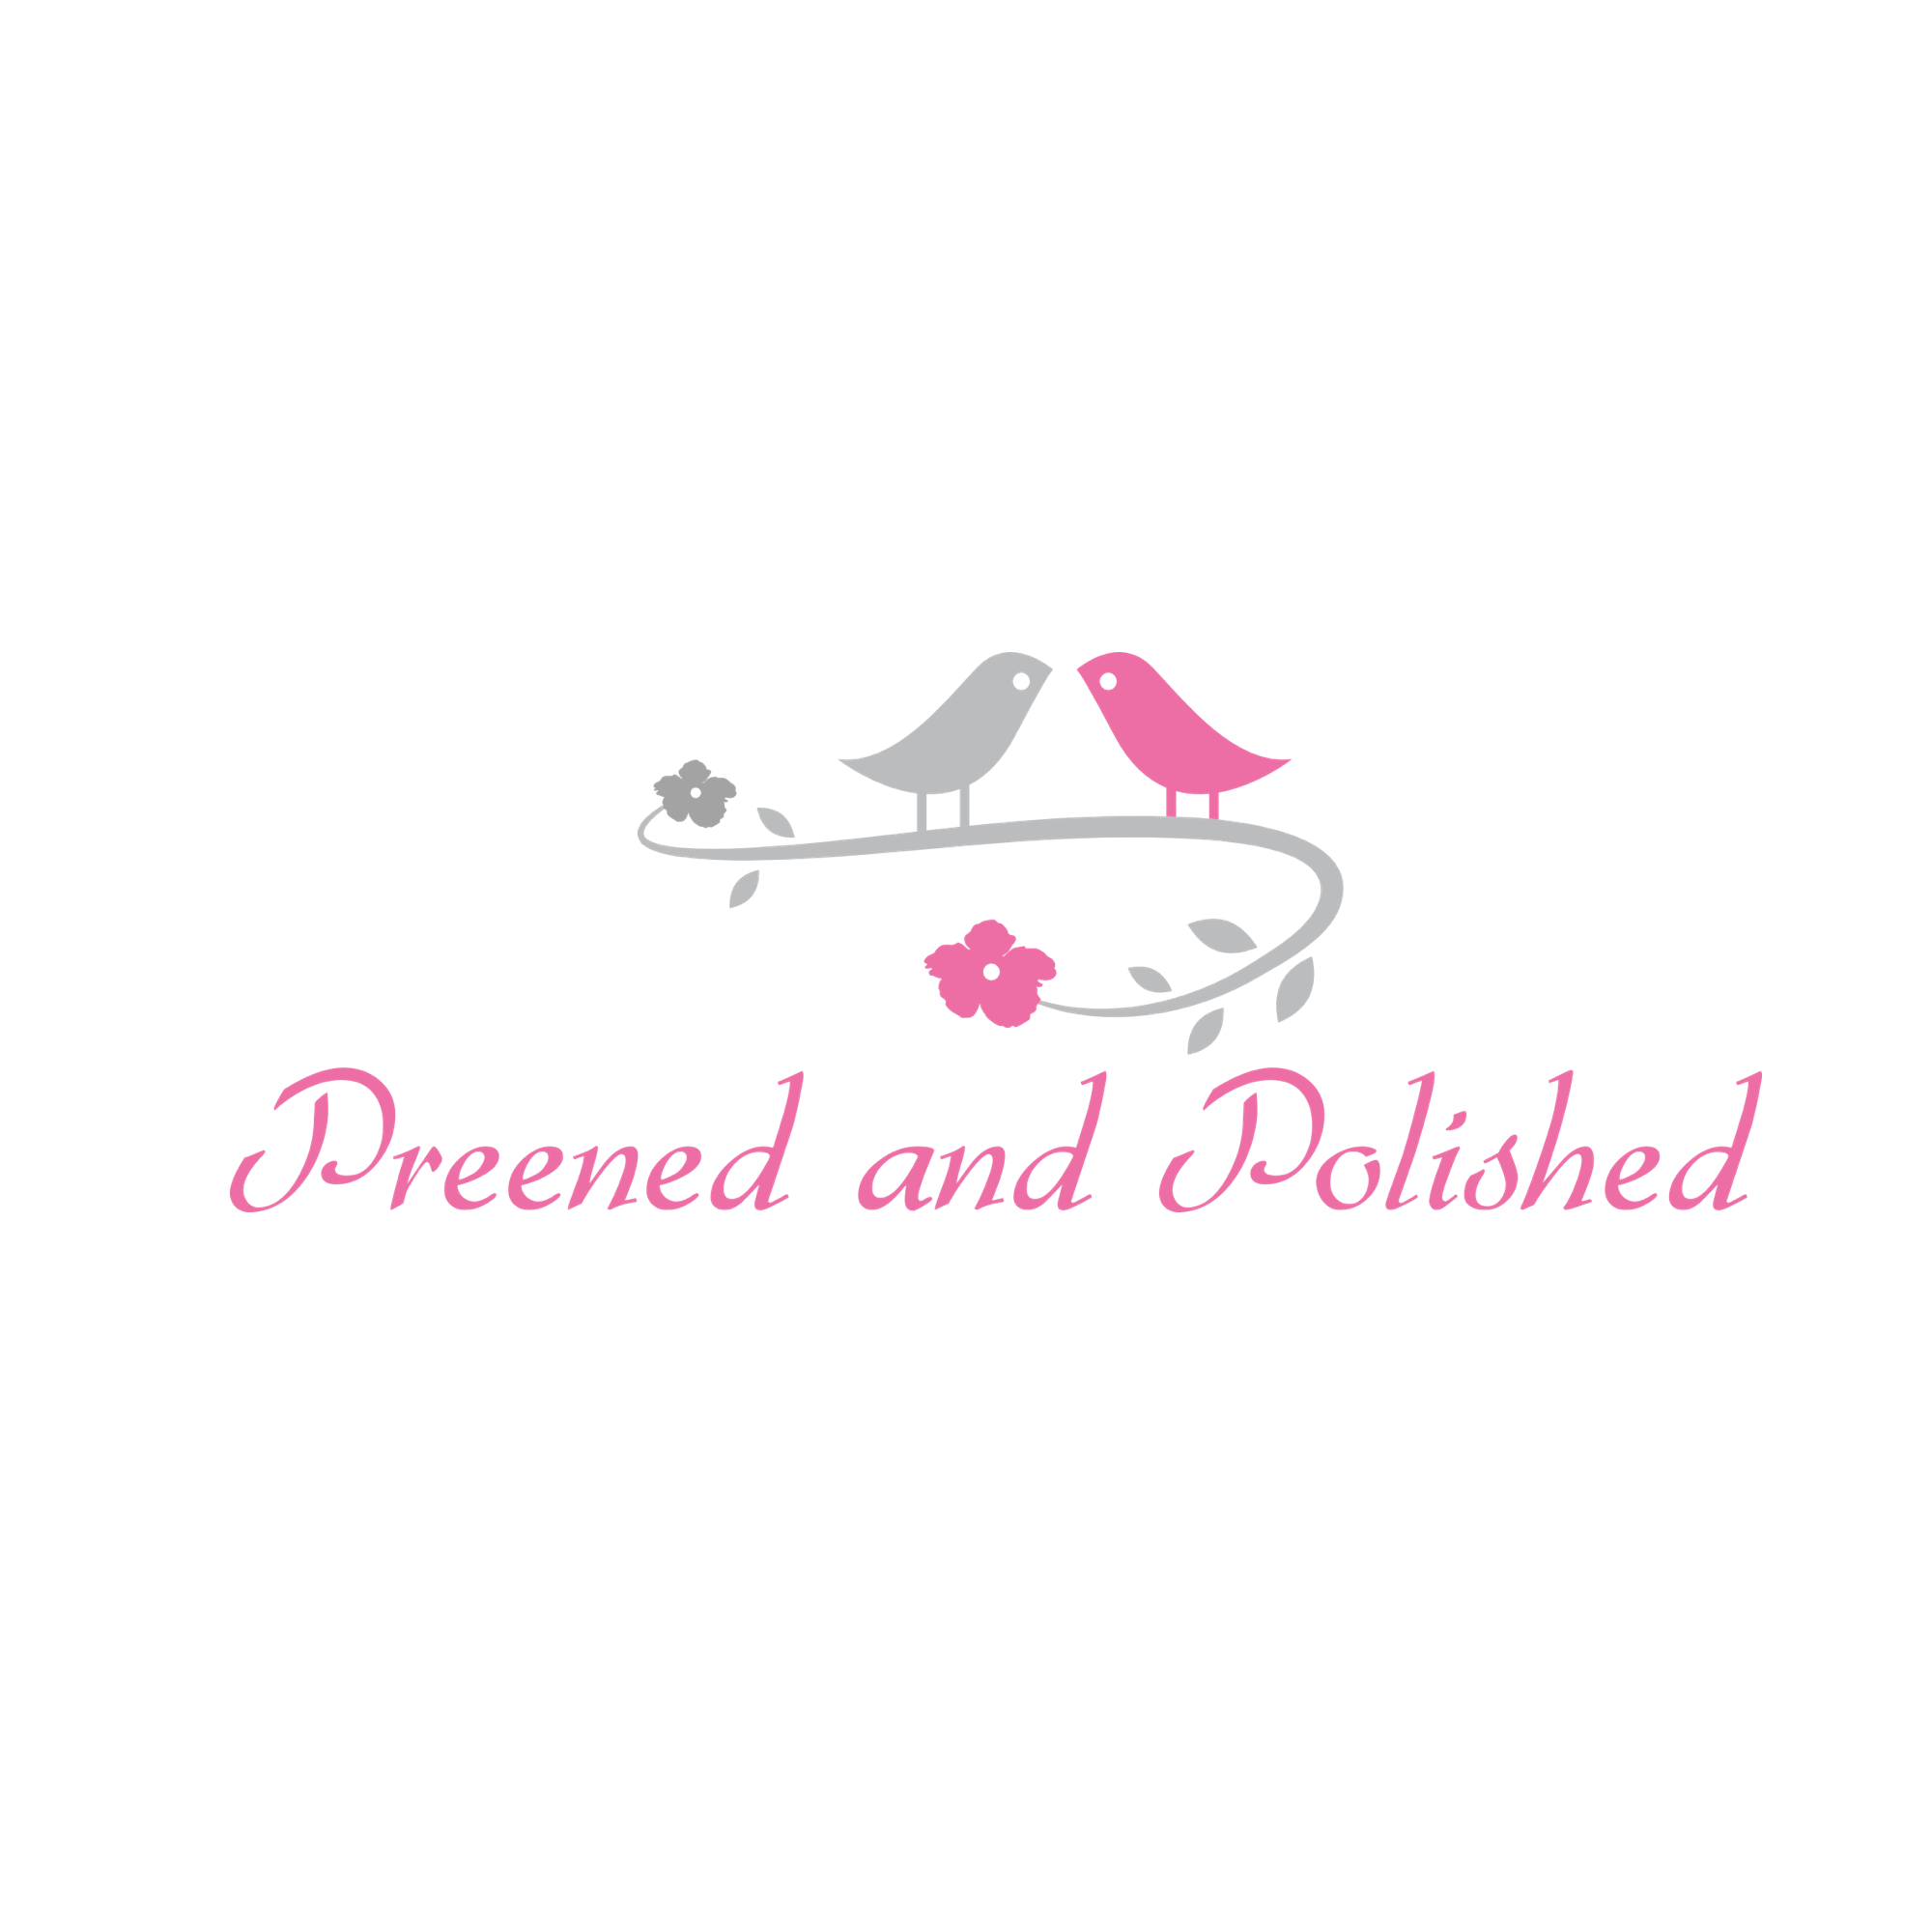 Preened and Polished Ltd